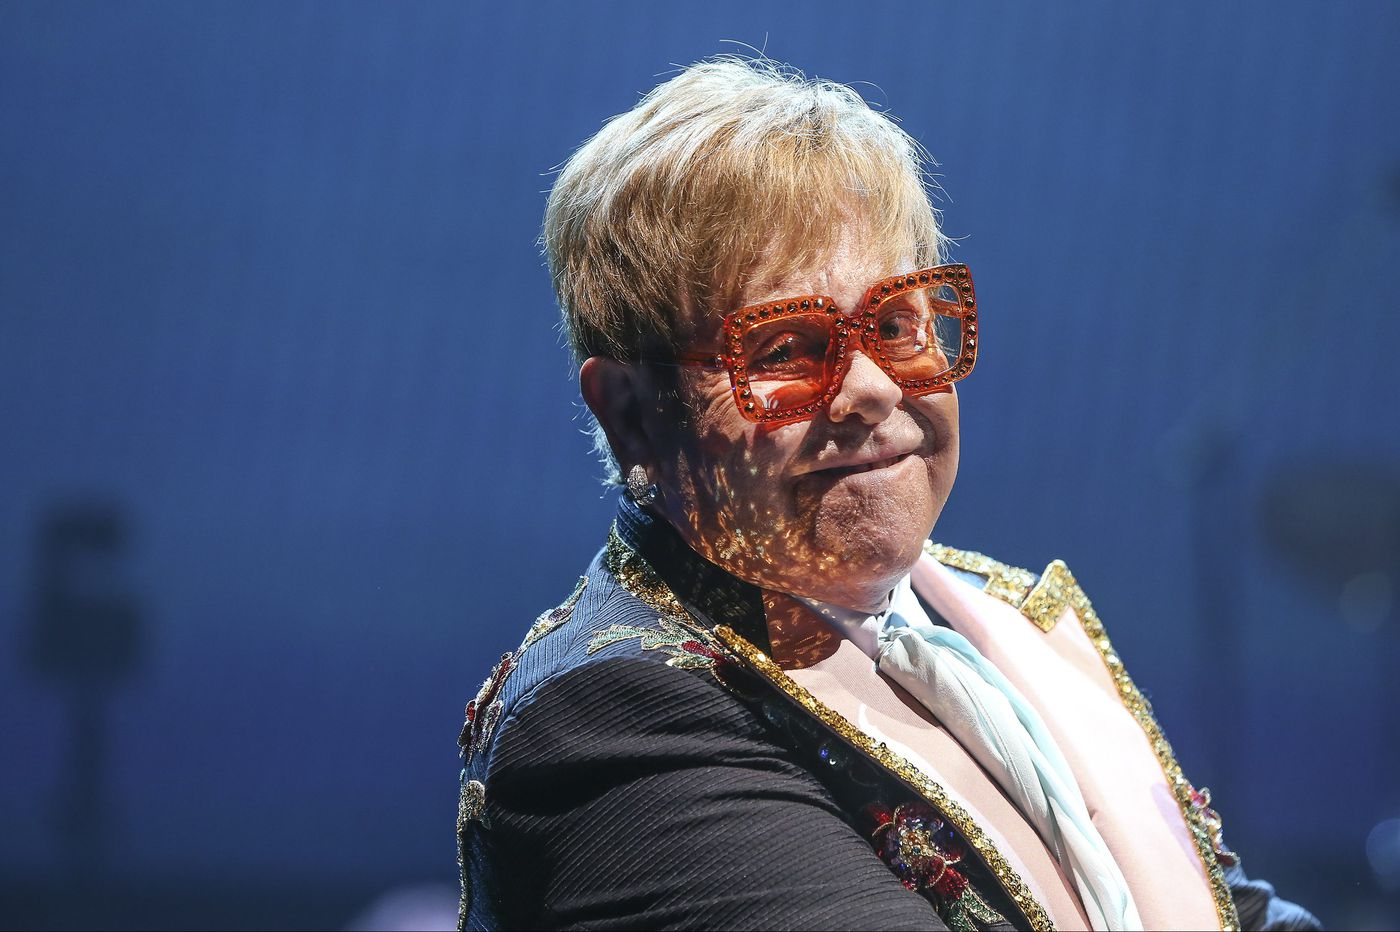 Elton John plays intimate surprise show at Parx Casino in Bensalem